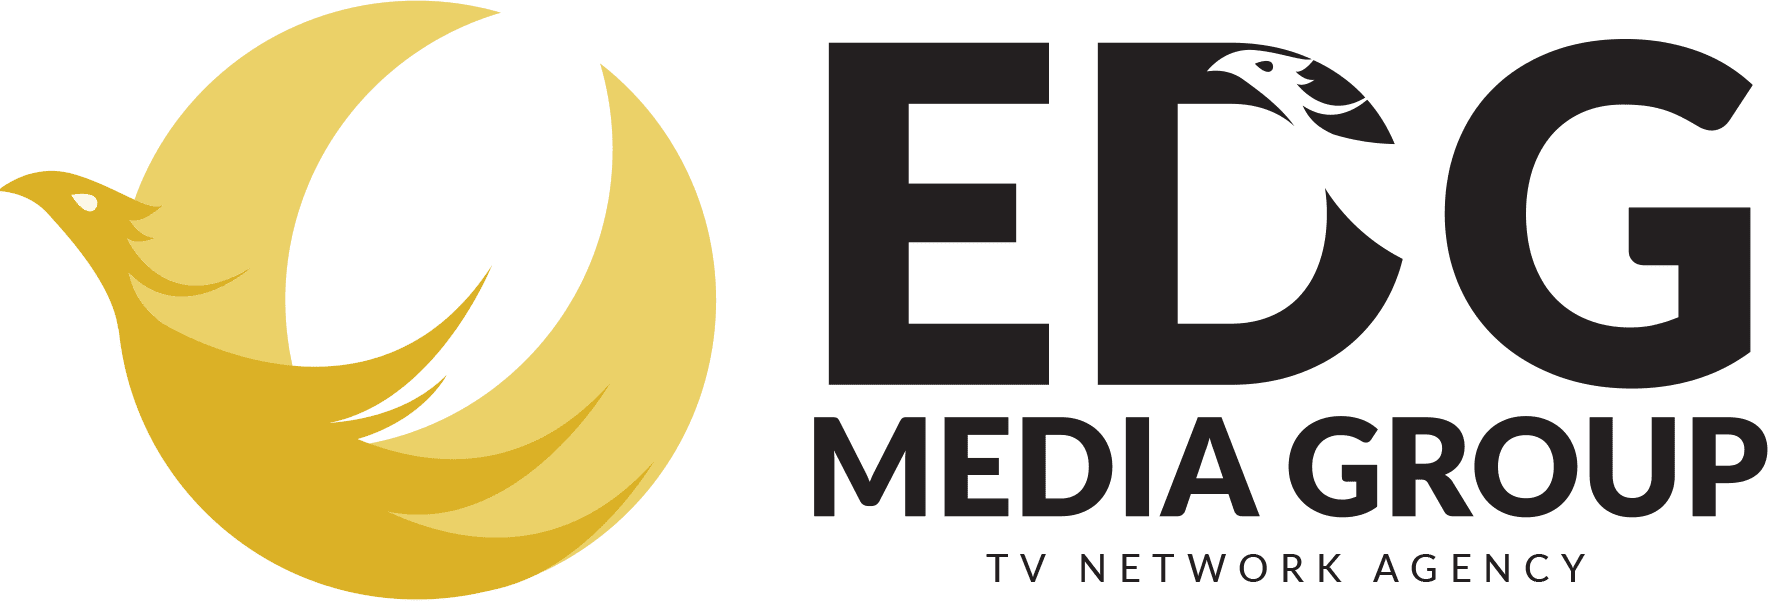 EdG Media Group Logo